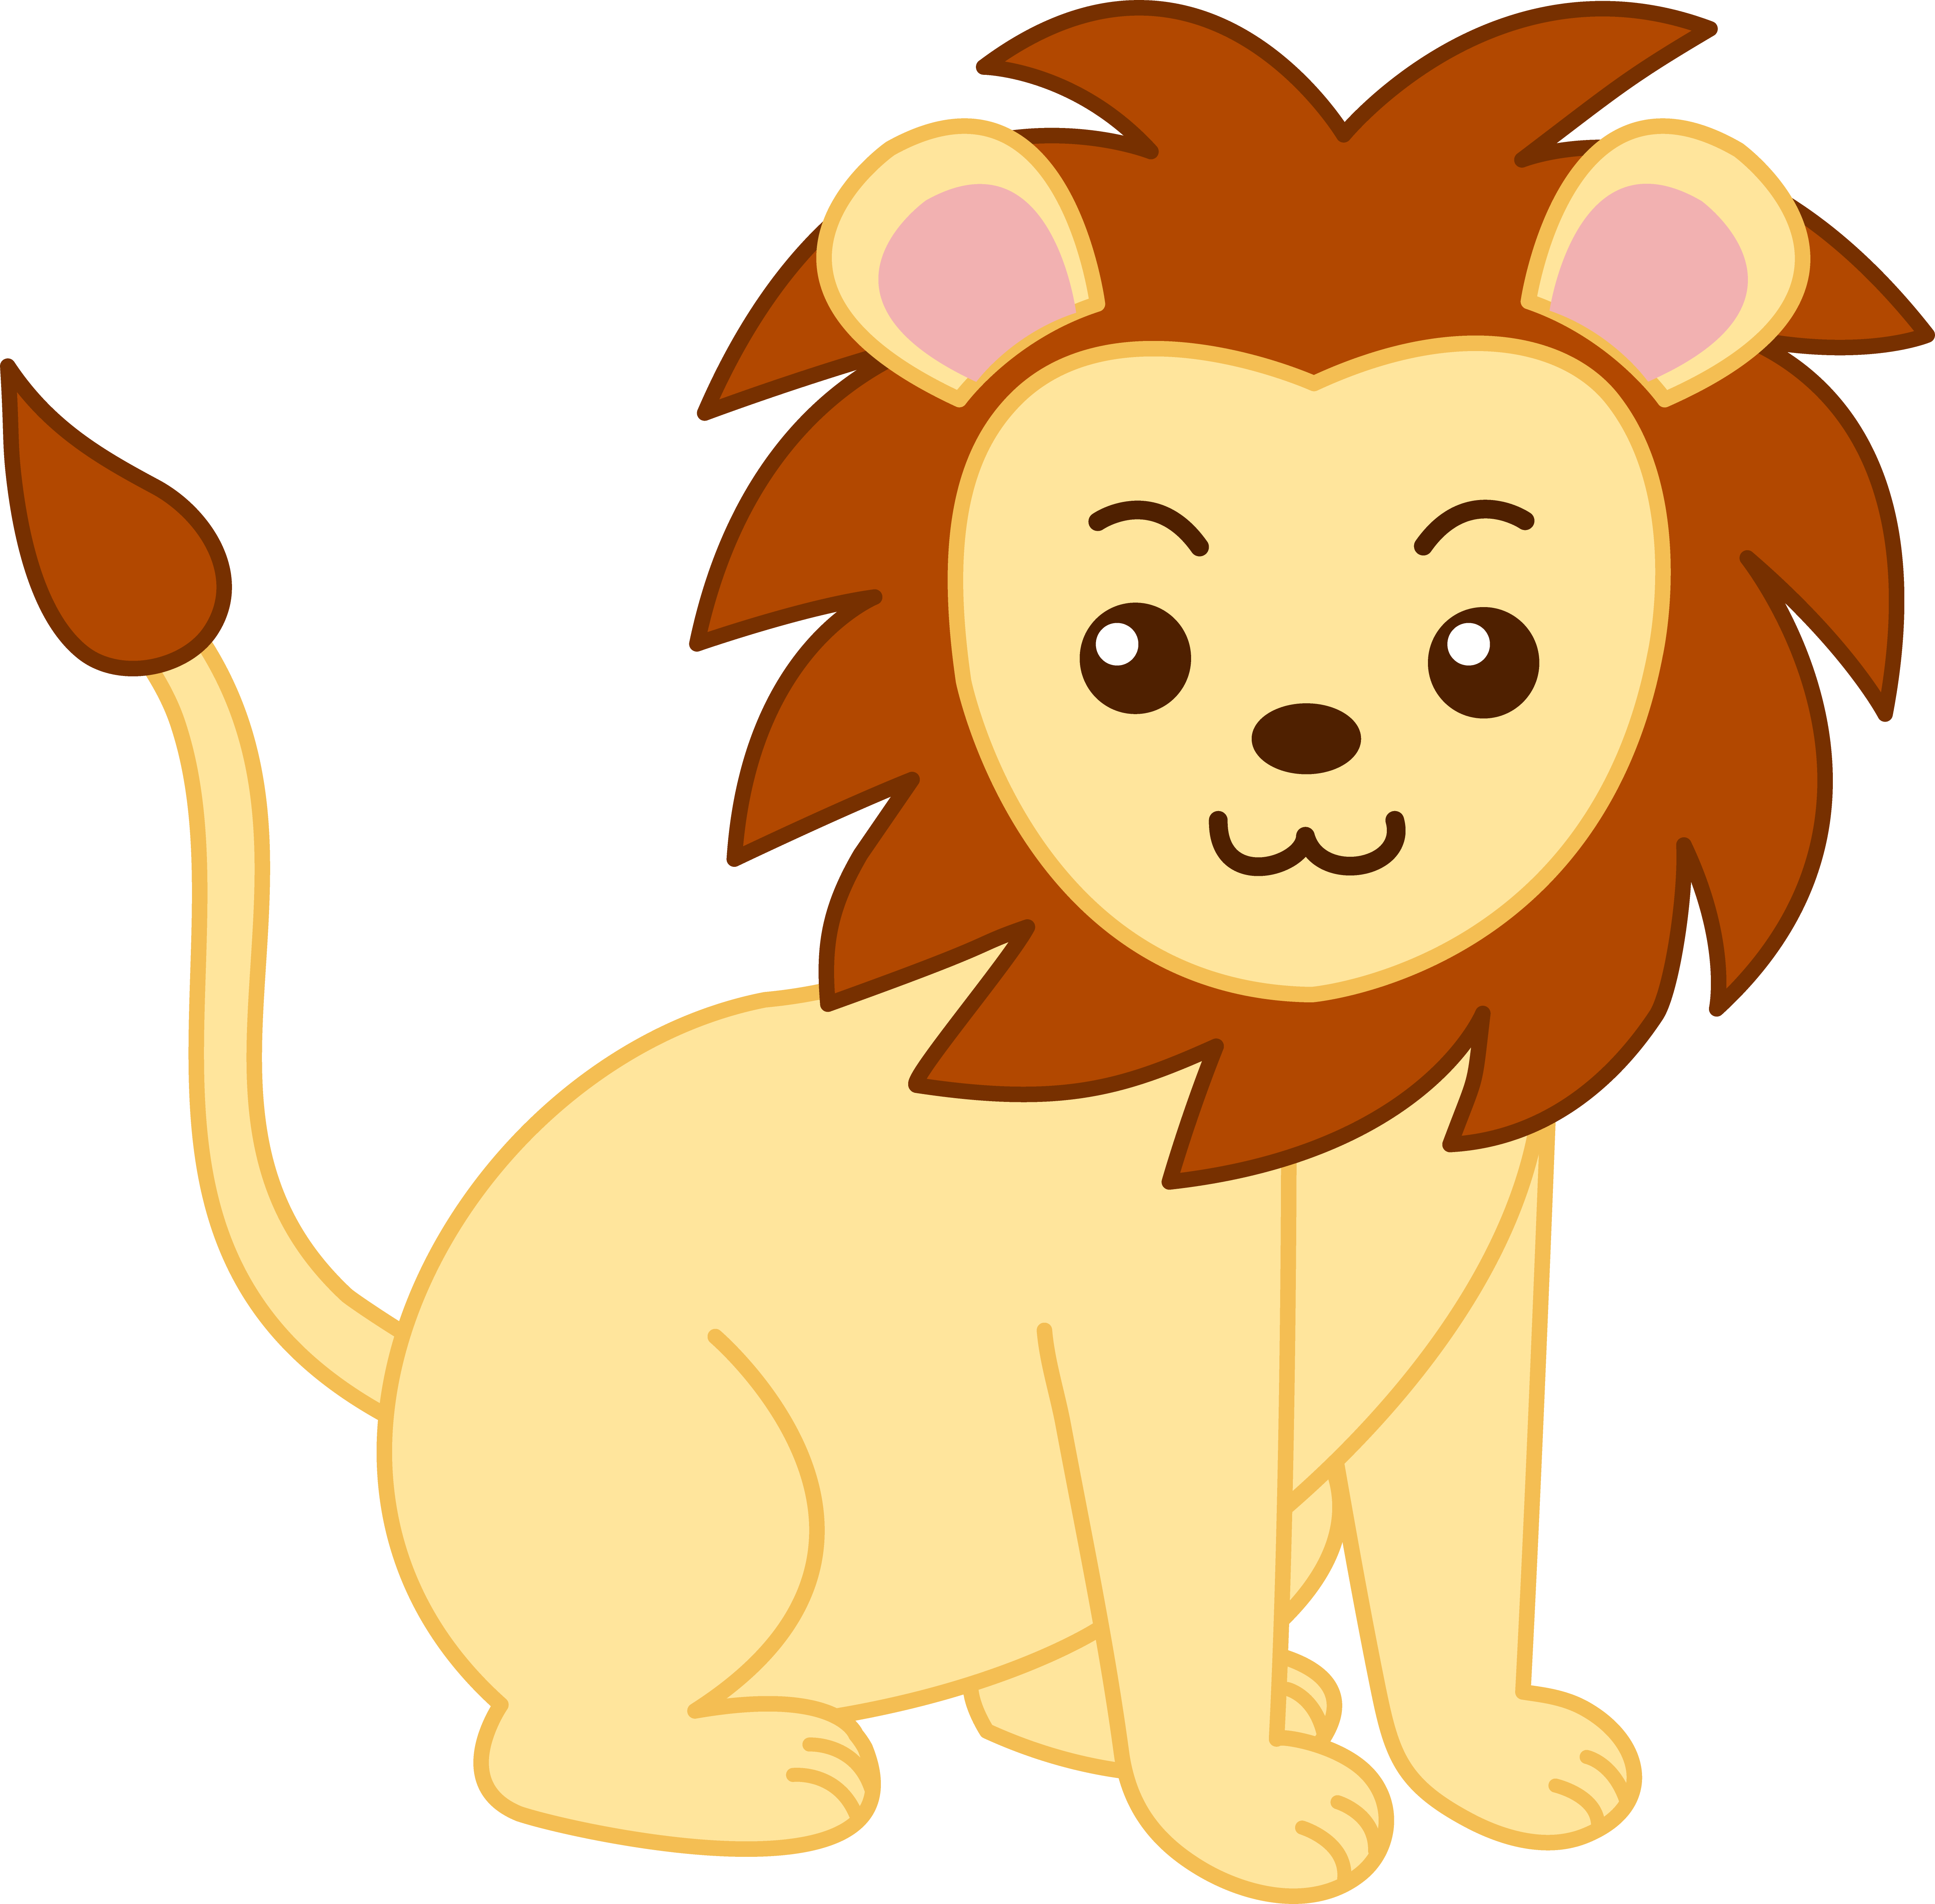 Cute Zoo Animals Clipart | Clipart library - Free Clipart Images